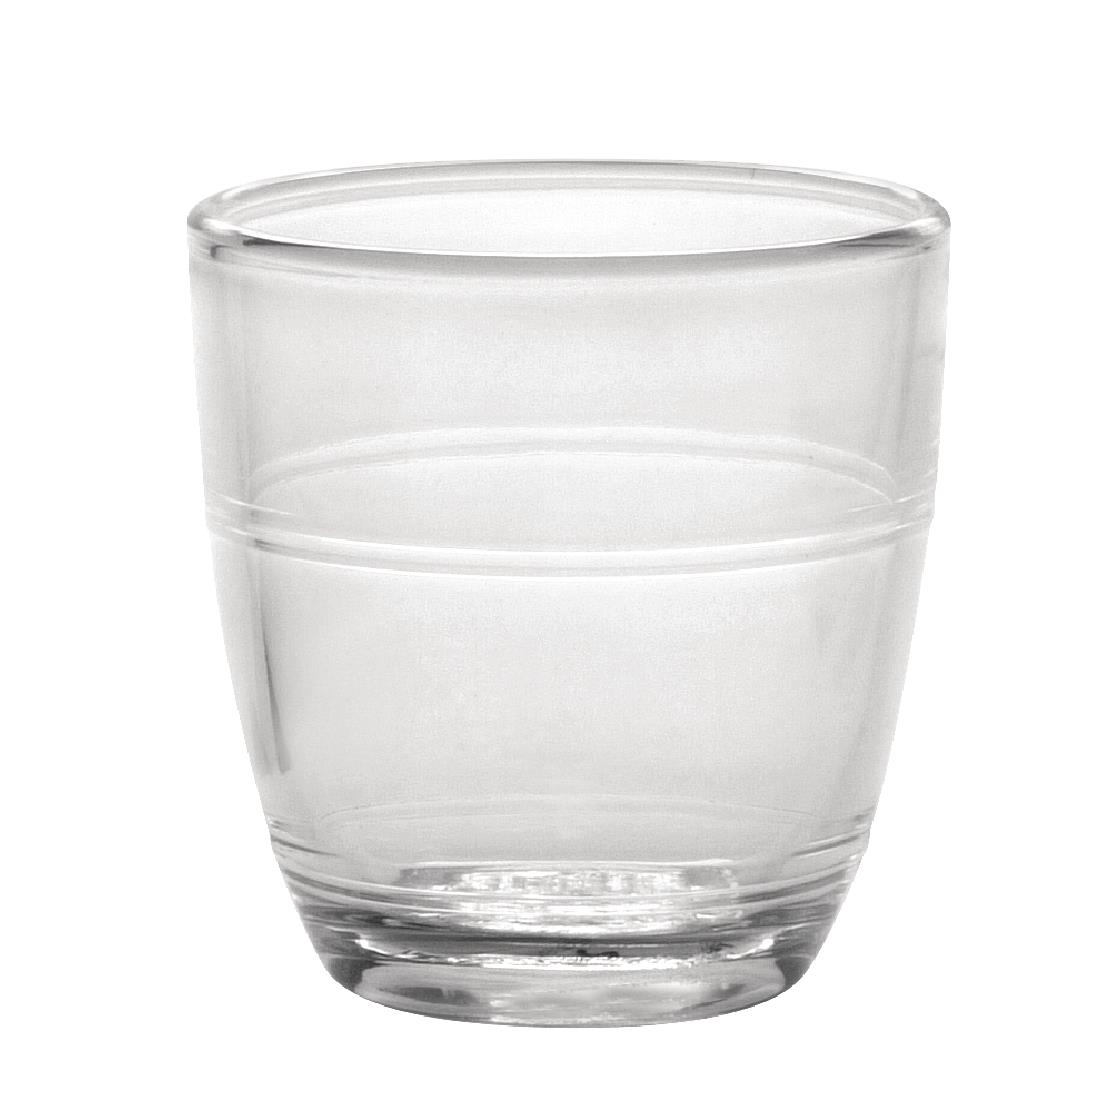 Image of Duralex Gigogne Tumblers 90ml (Pack of 6) Pack of 6